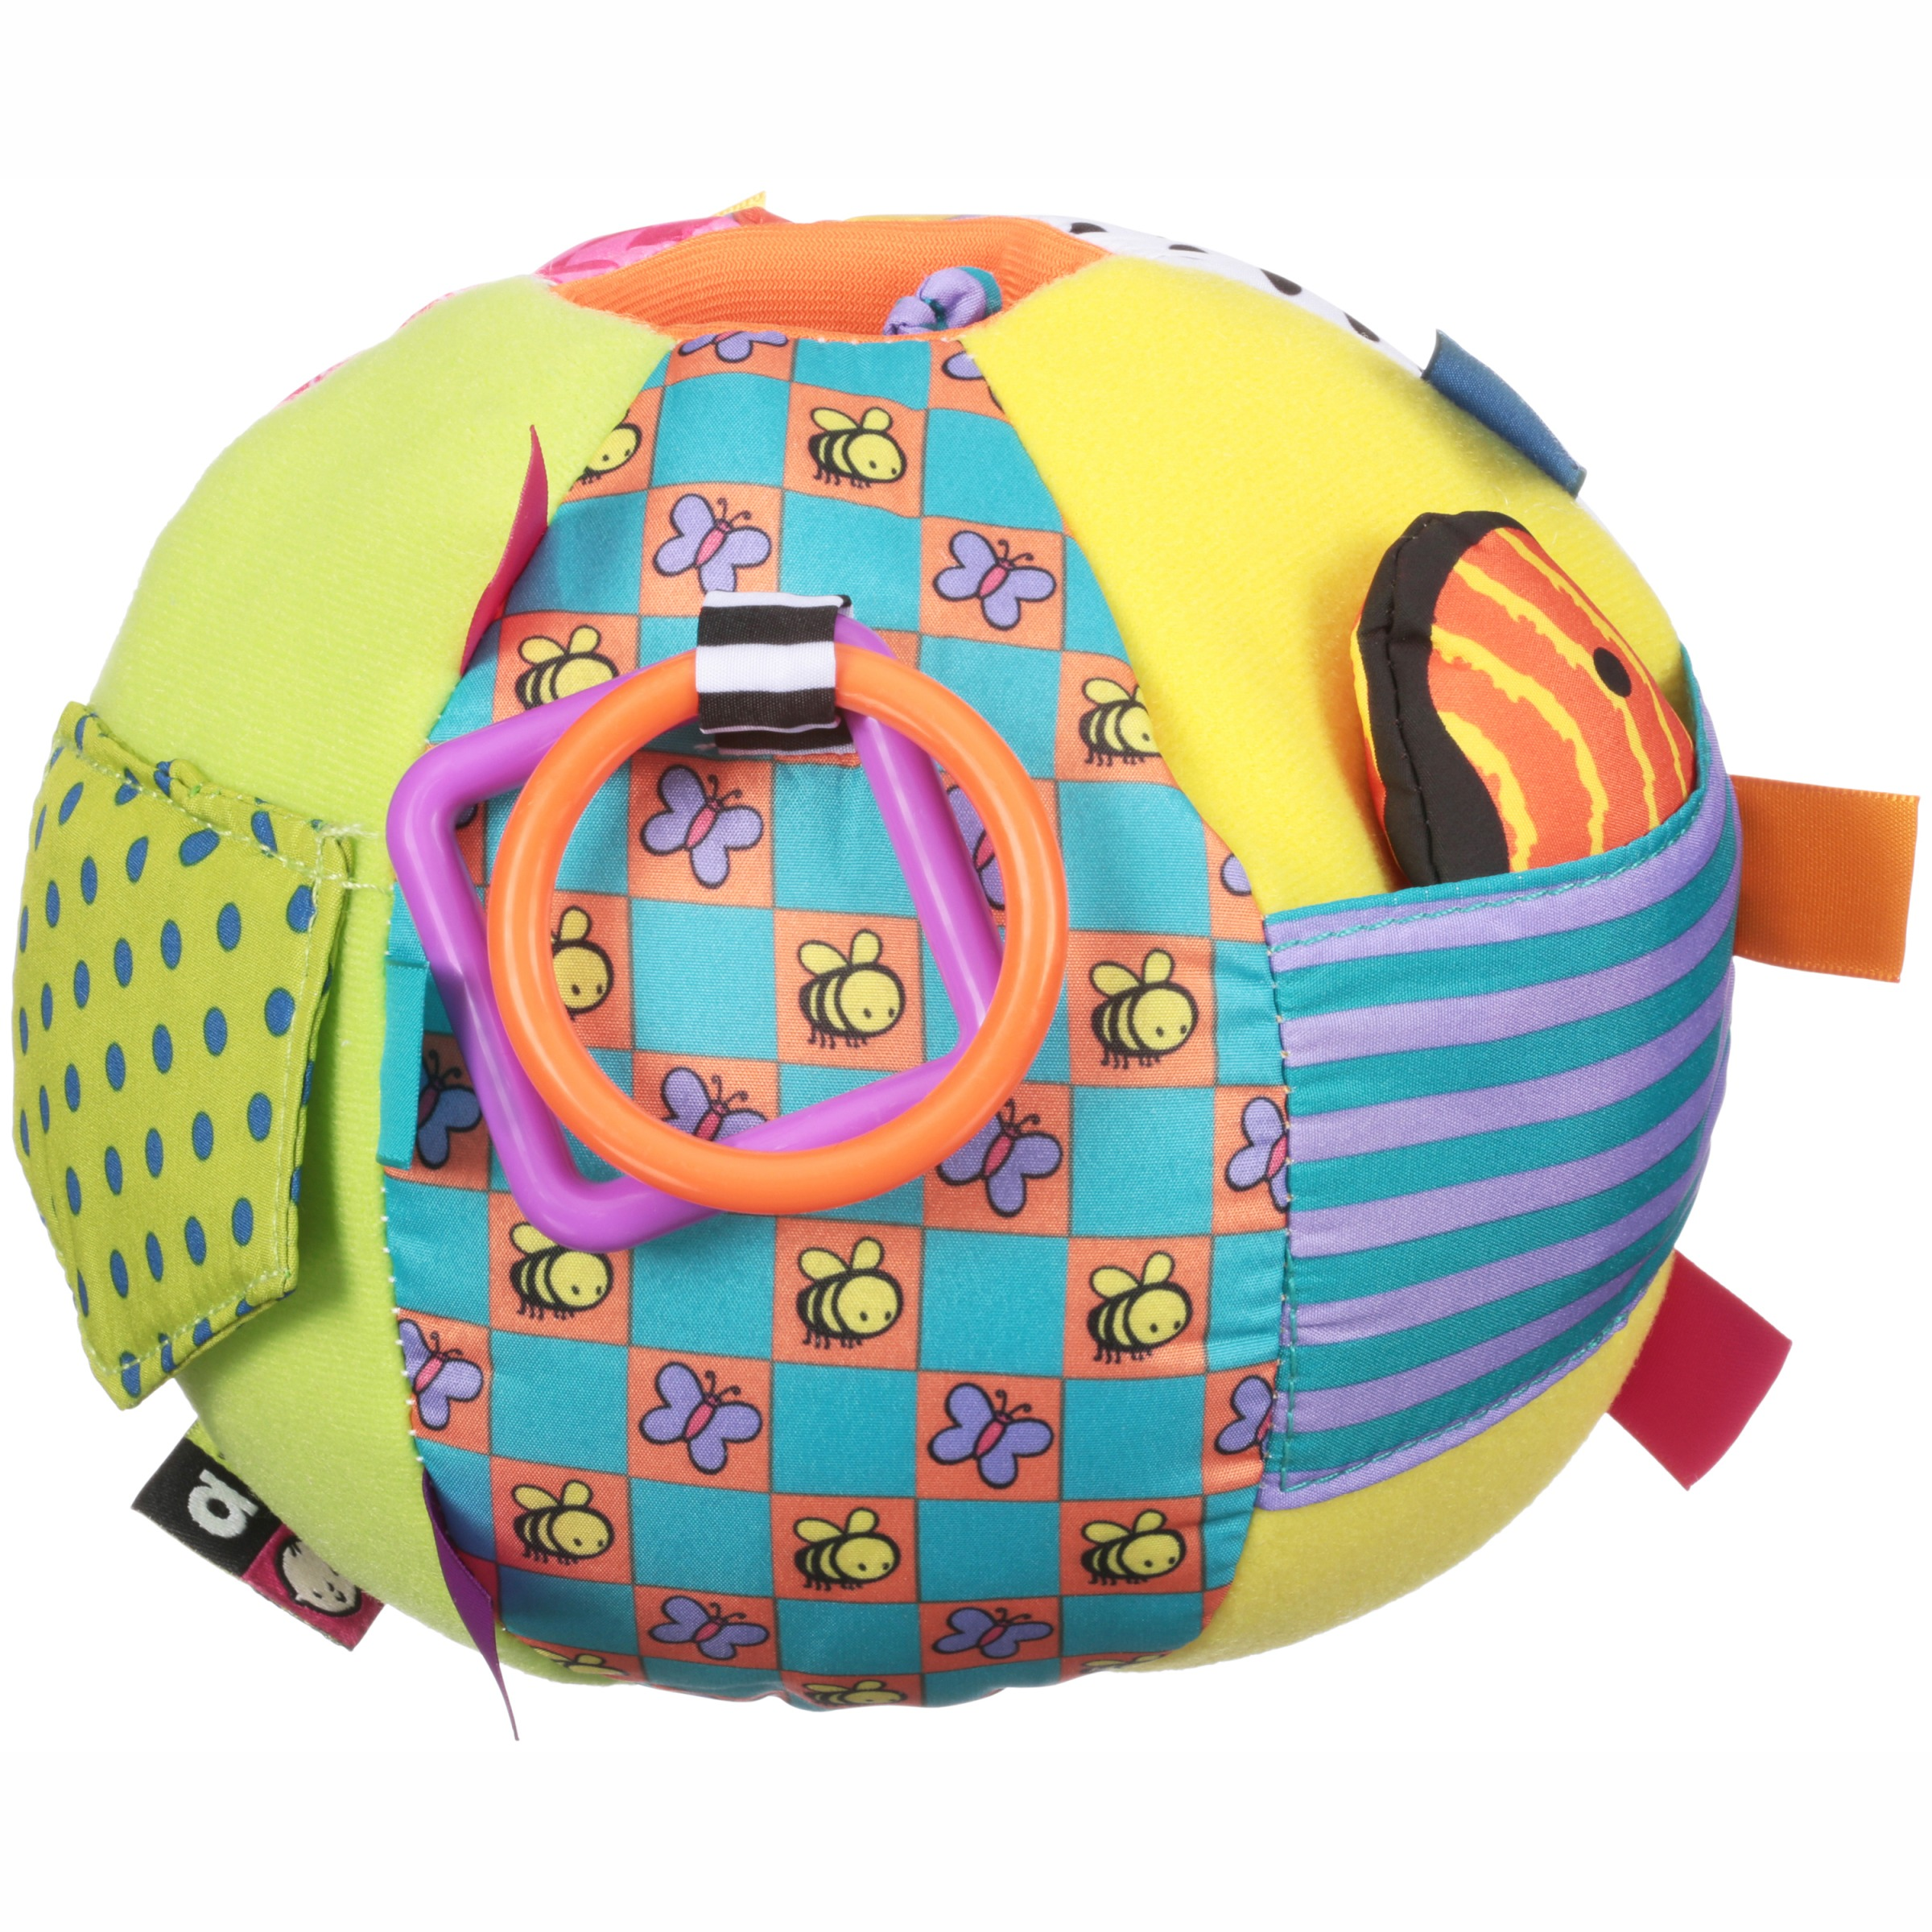 Kids Preferred™ Amazing Baby™ Developmental Activity Ball with